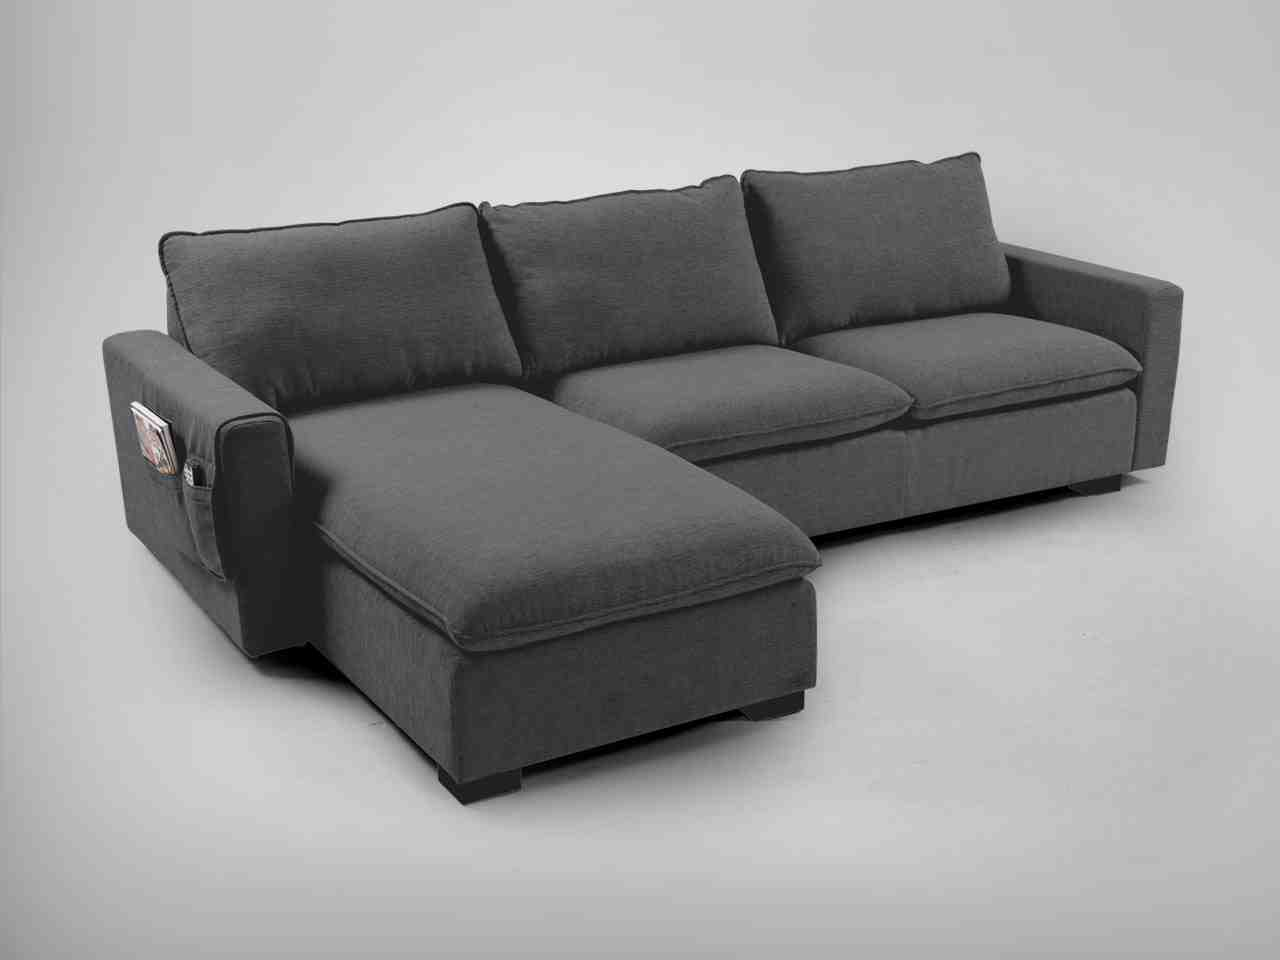 l shape sofa bed designs pictures second hand set in bangalore shaped and why it makes sense home furniture design